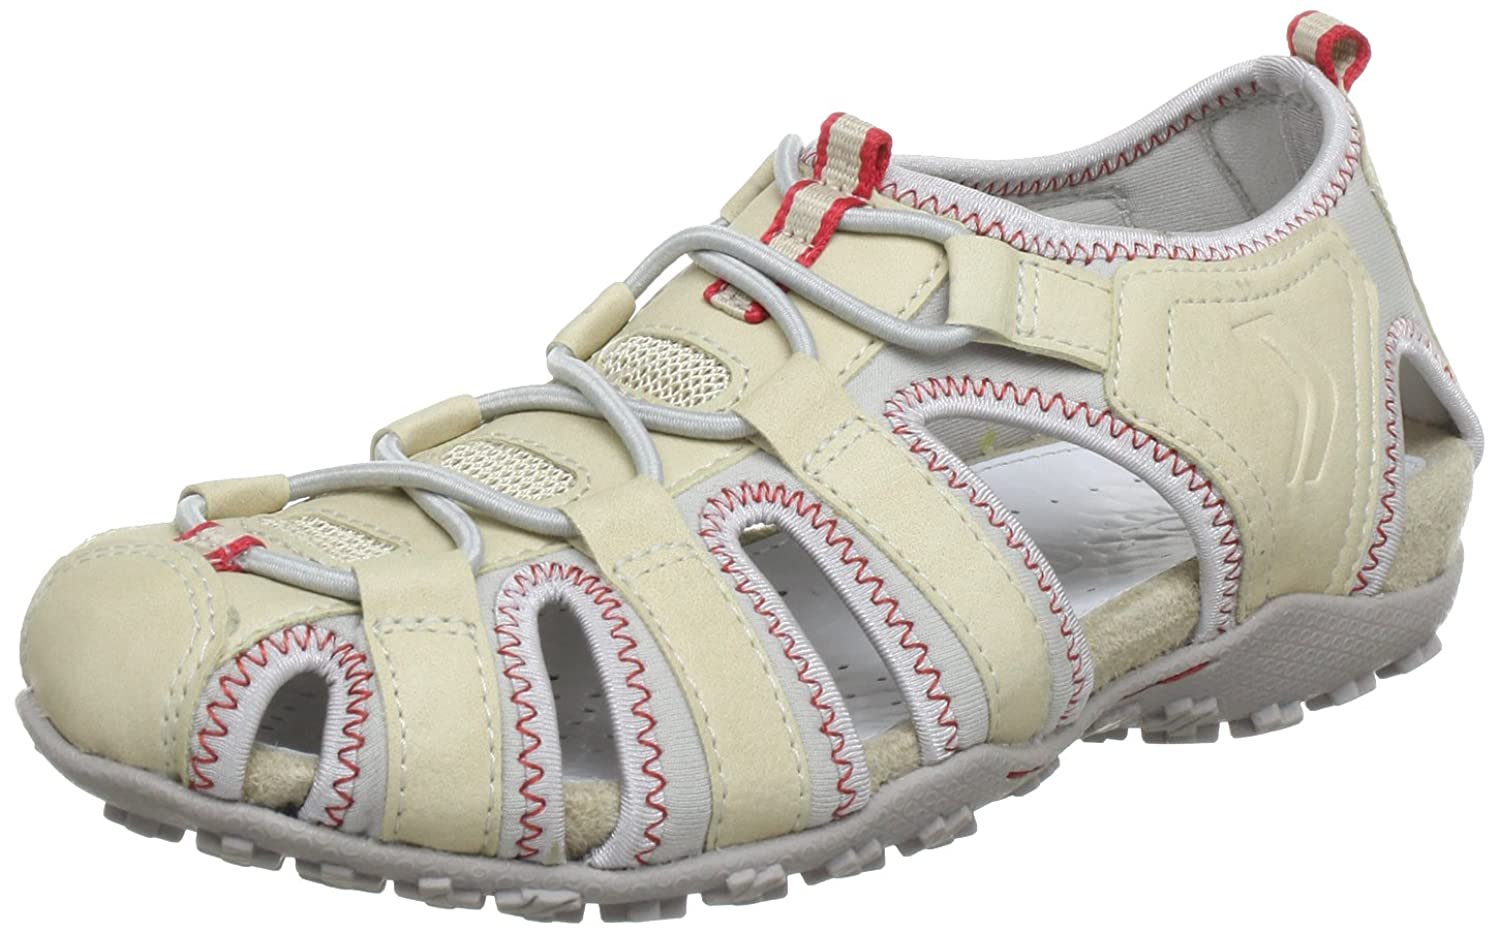 Chaussures Femme Amazon Chaussures Geox Femme Amazon Chaussures Geox Femme RU7X1wq